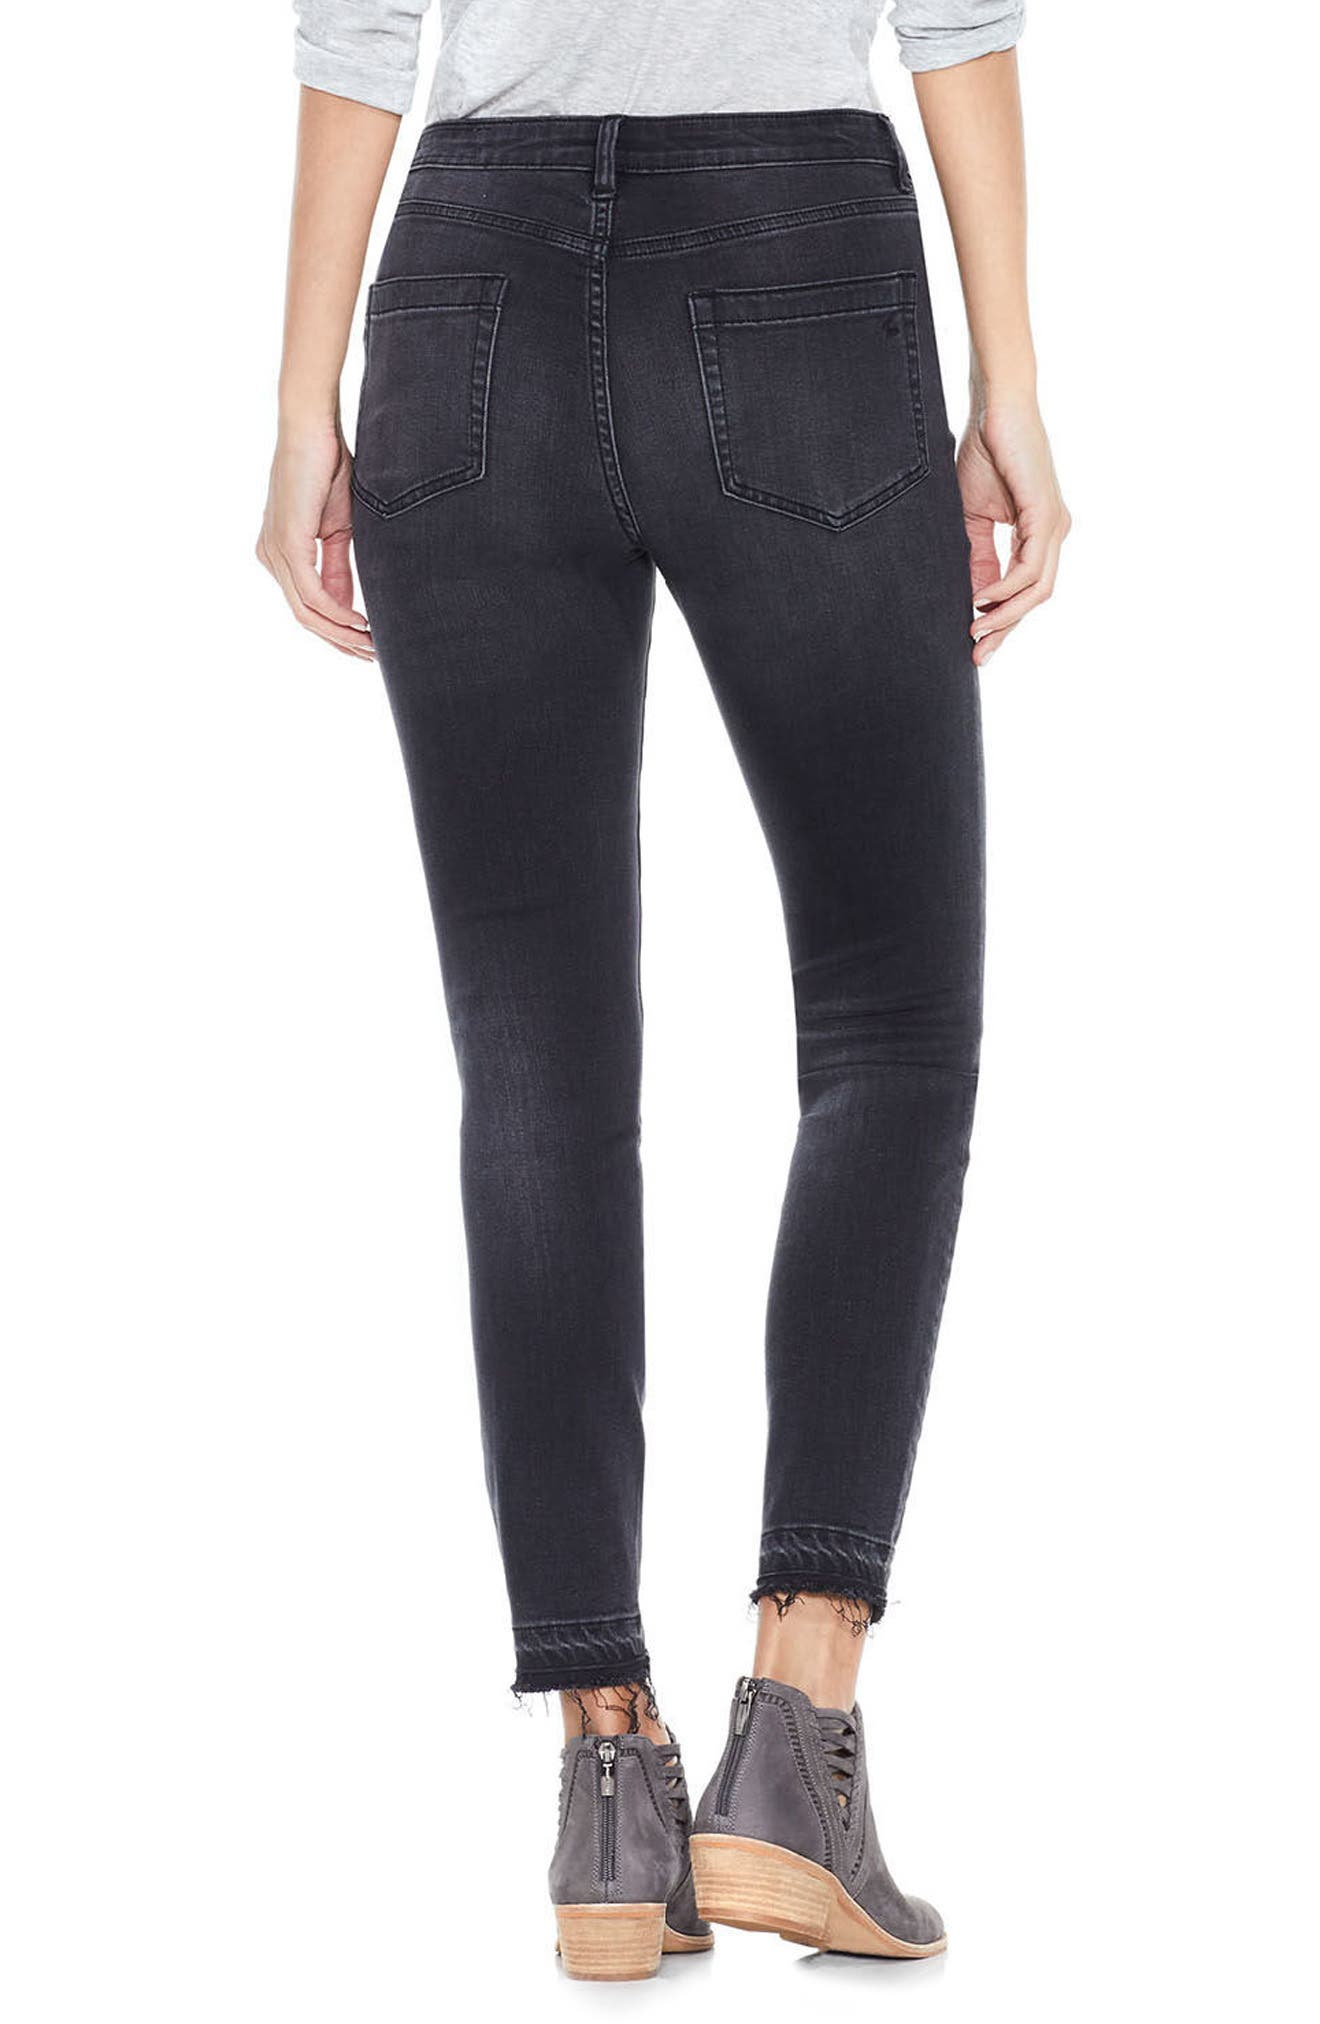 Alternate Image 3  - Two by Vince Camuto Release Hem Ankle Jeans (Coal)